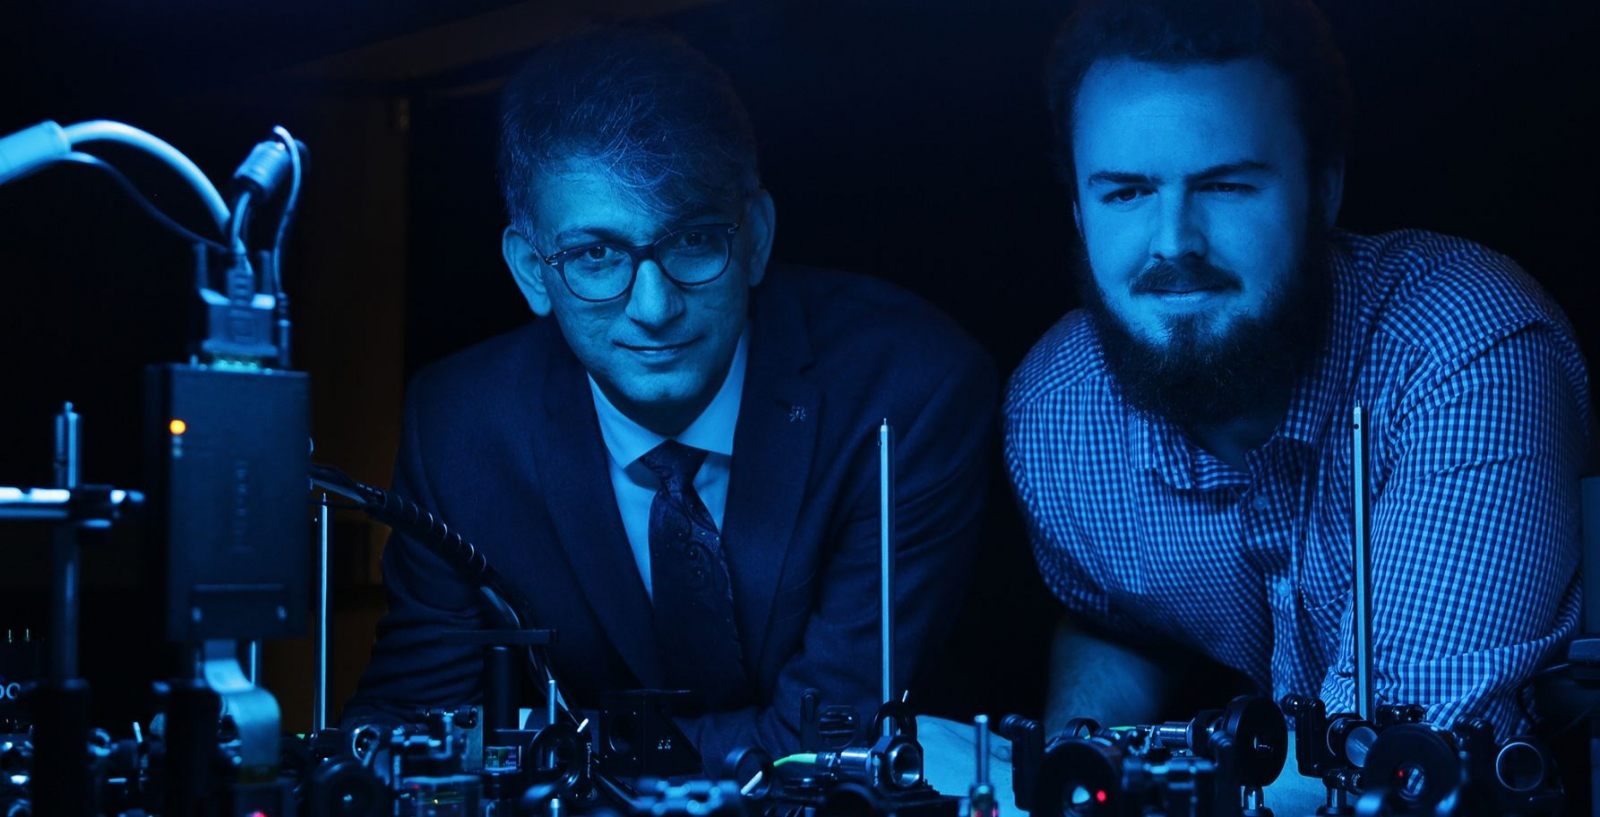 How to protect quantum computing networks